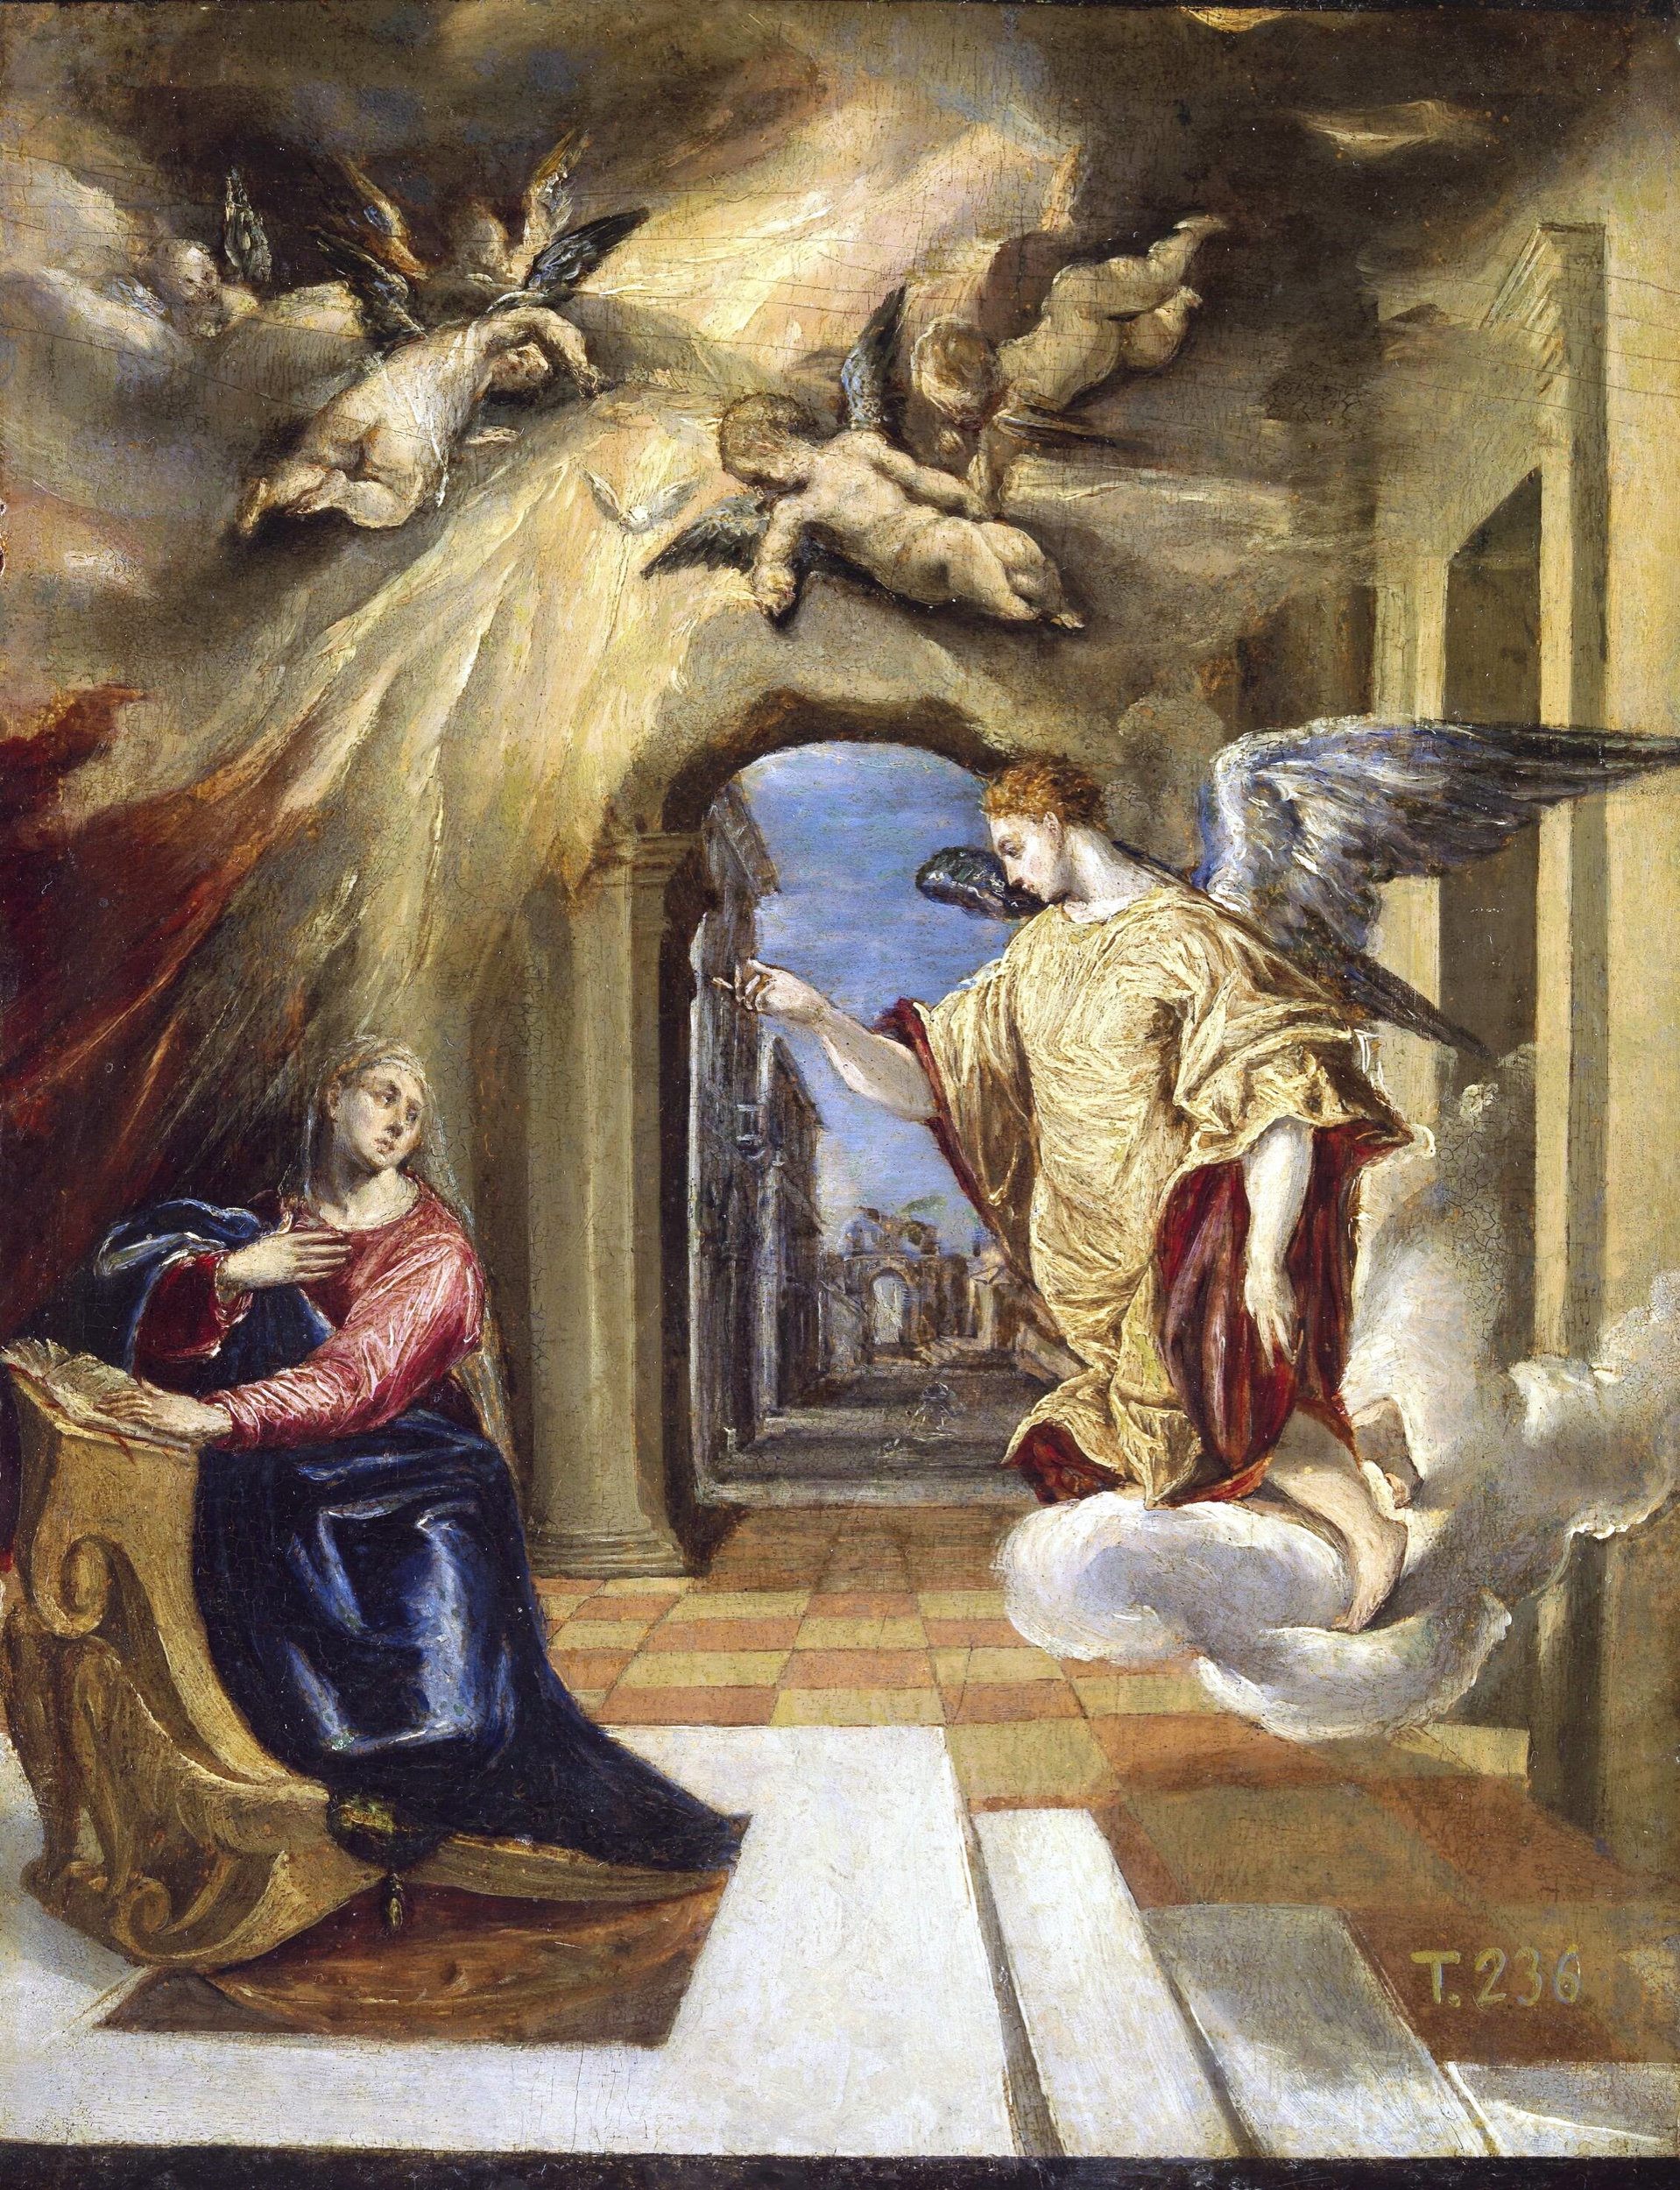 Artist: El Greco. Title: The Annunciation. Date: 1570-1572. This work of art is in the public domain.